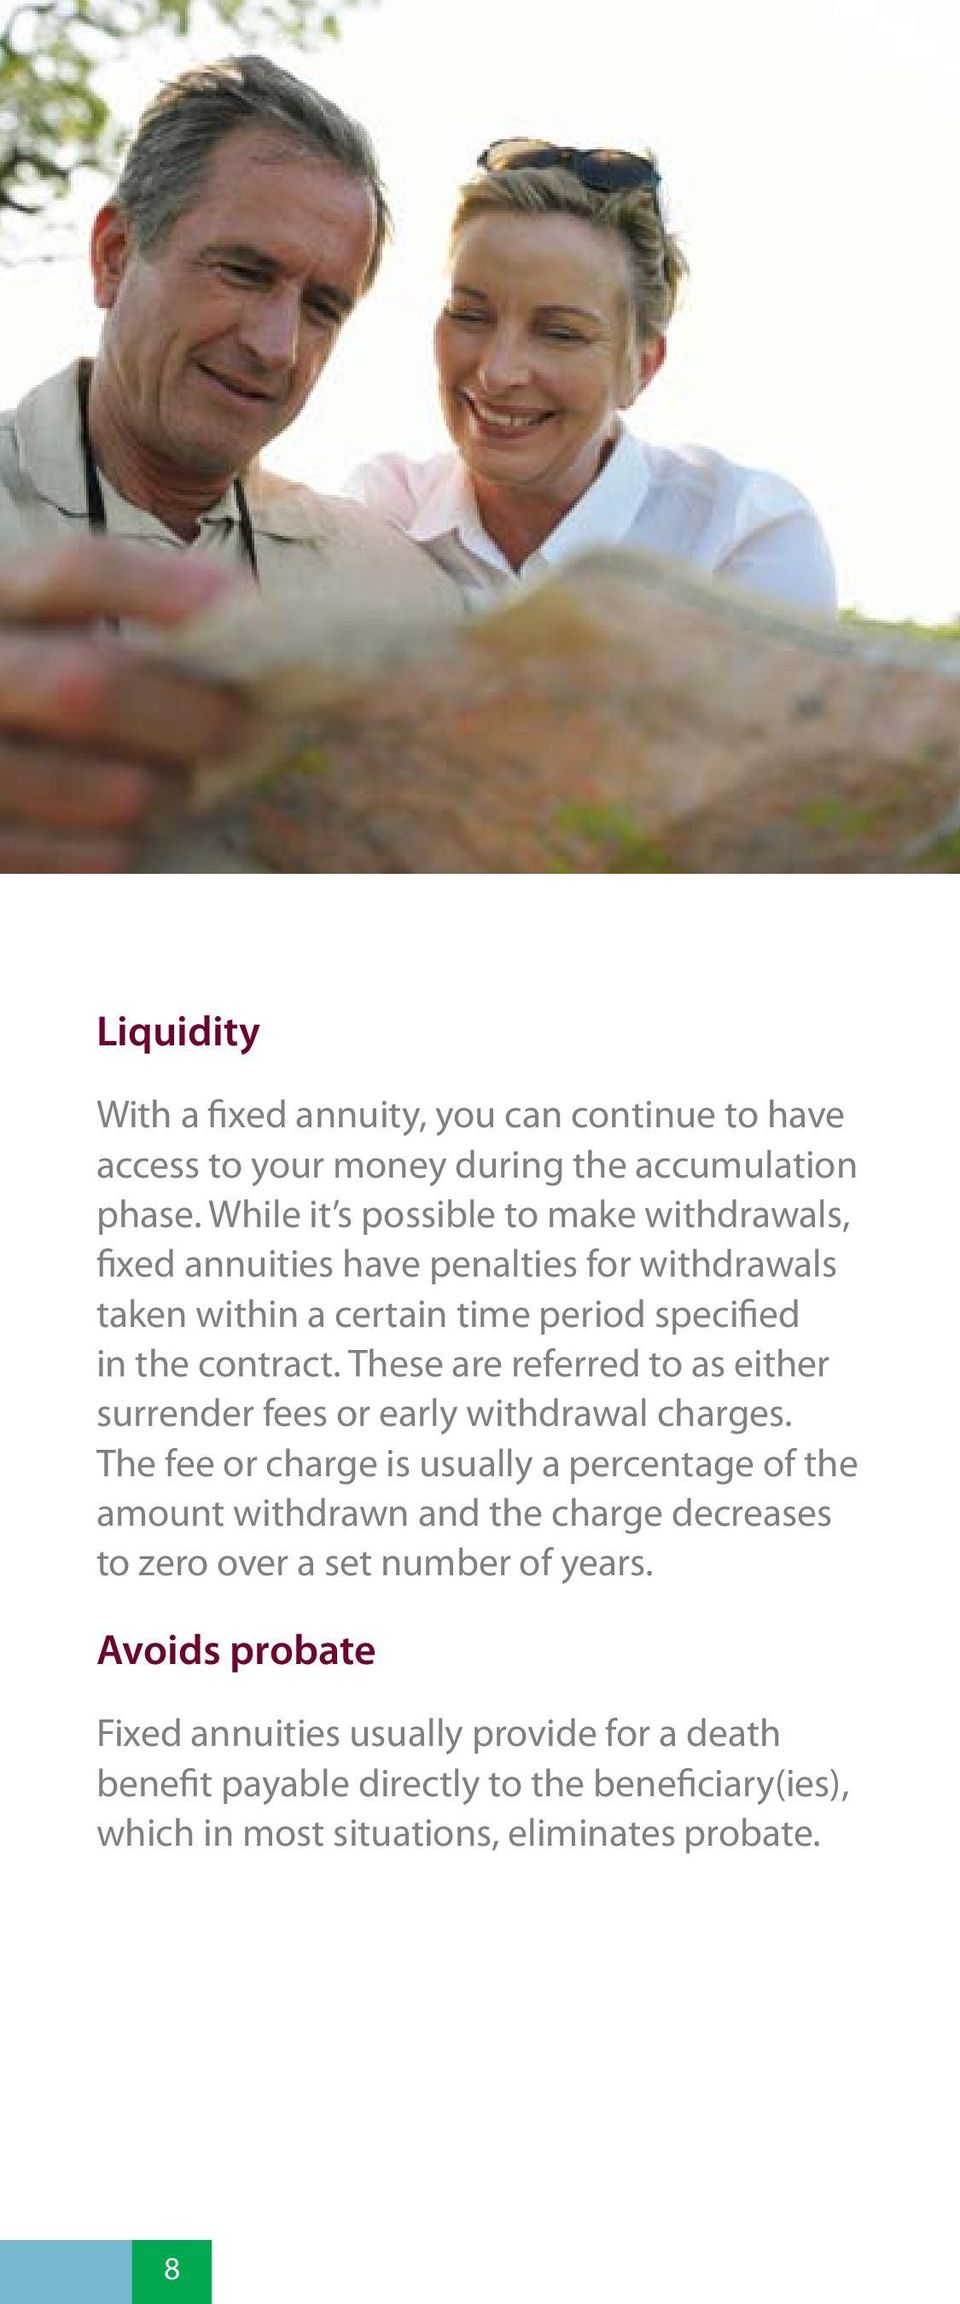 These are referred to as either surrender fees or early withdrawal charges.